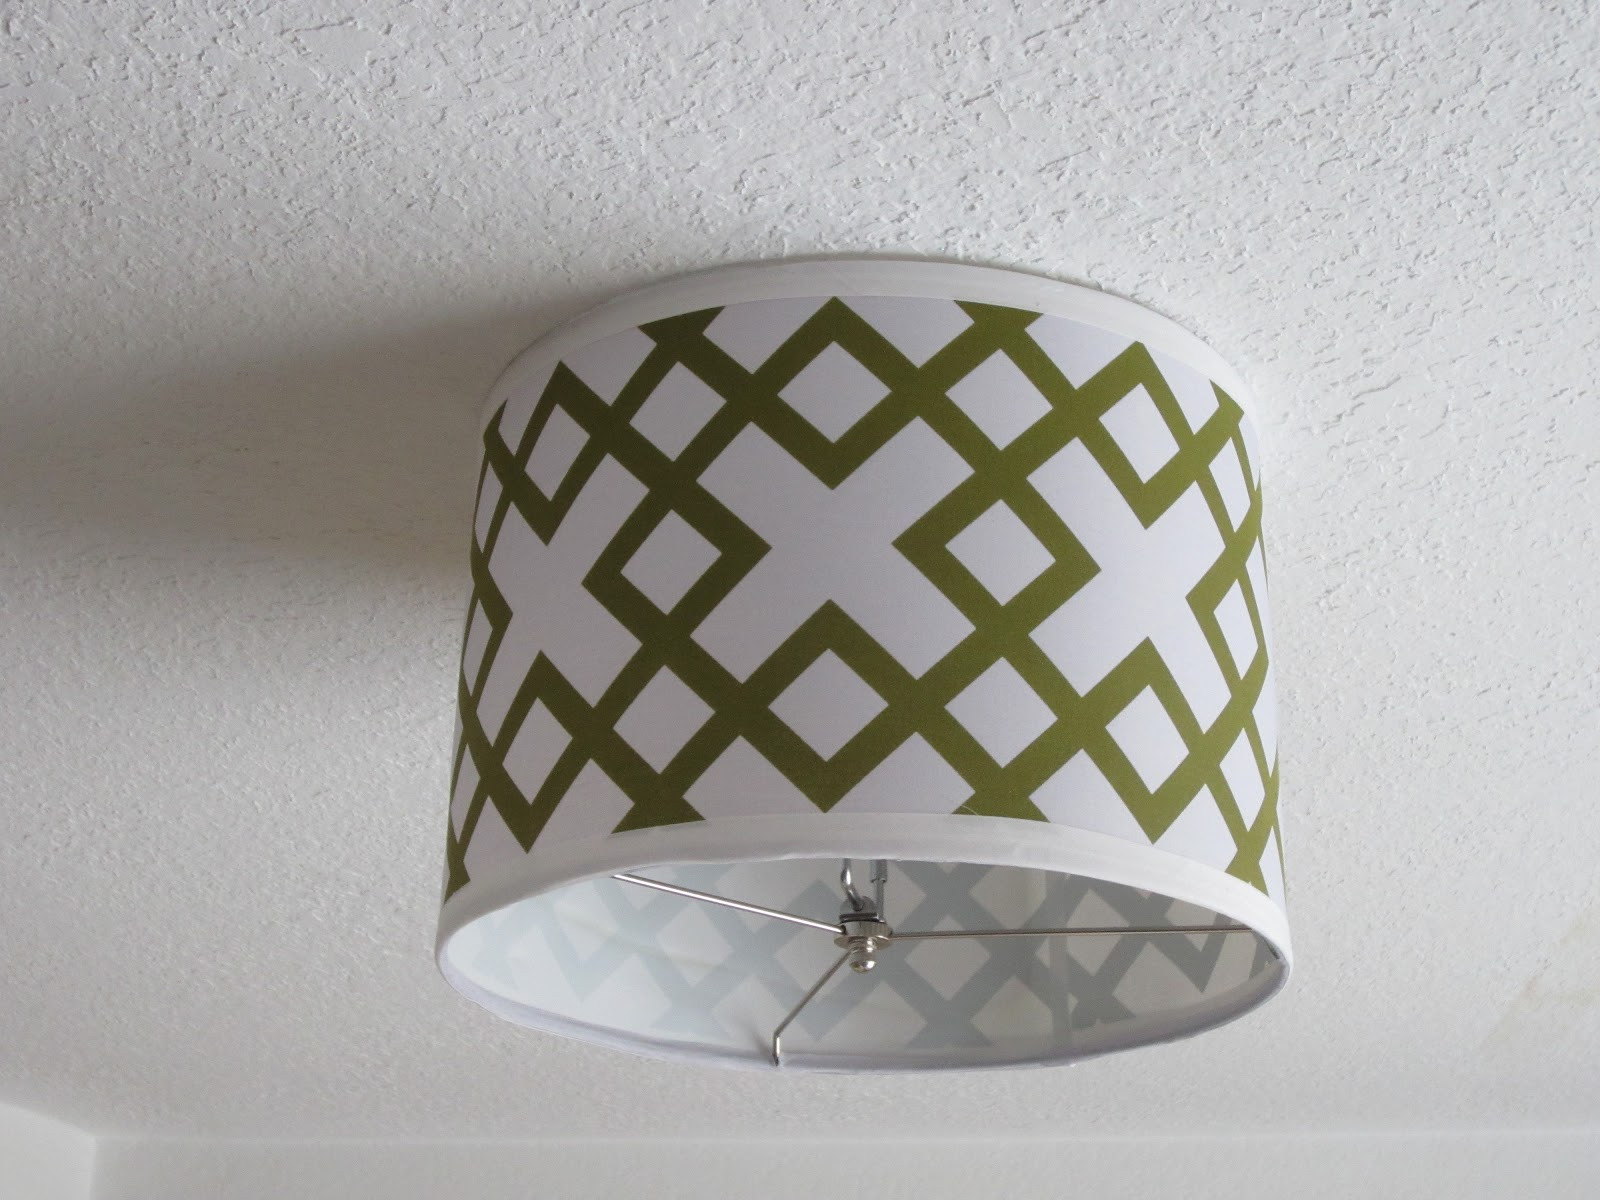 Best ideas about DIY Ceiling Lighting . Save or Pin Blue 11 Interiors DIY Ceiling Light Now.